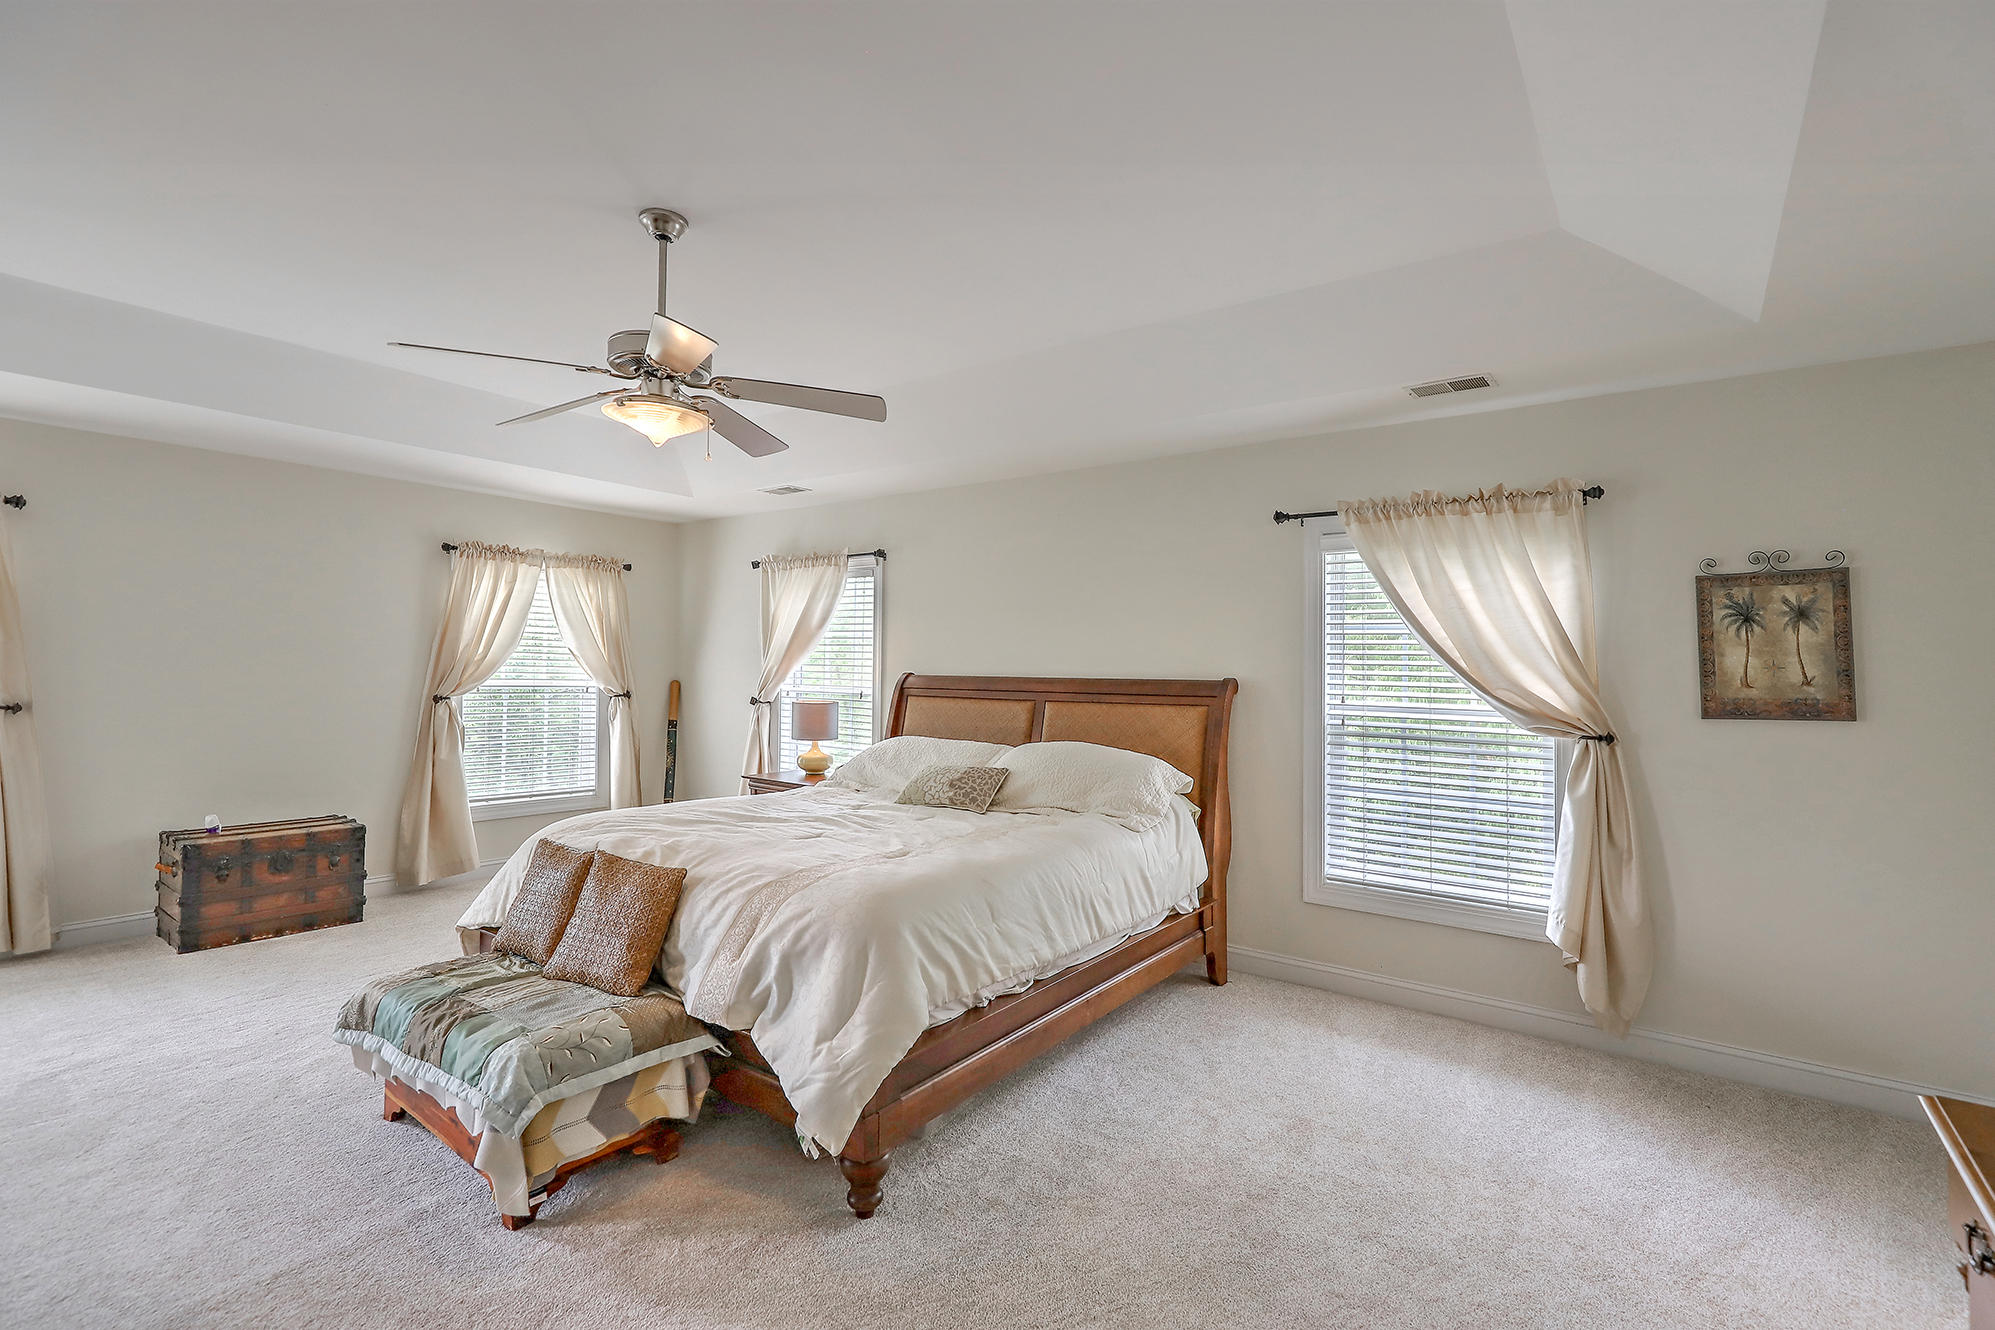 Rivertowne On The Wando Homes For Sale - 2182 Sandy Point Lane, Mount Pleasant, SC - 14